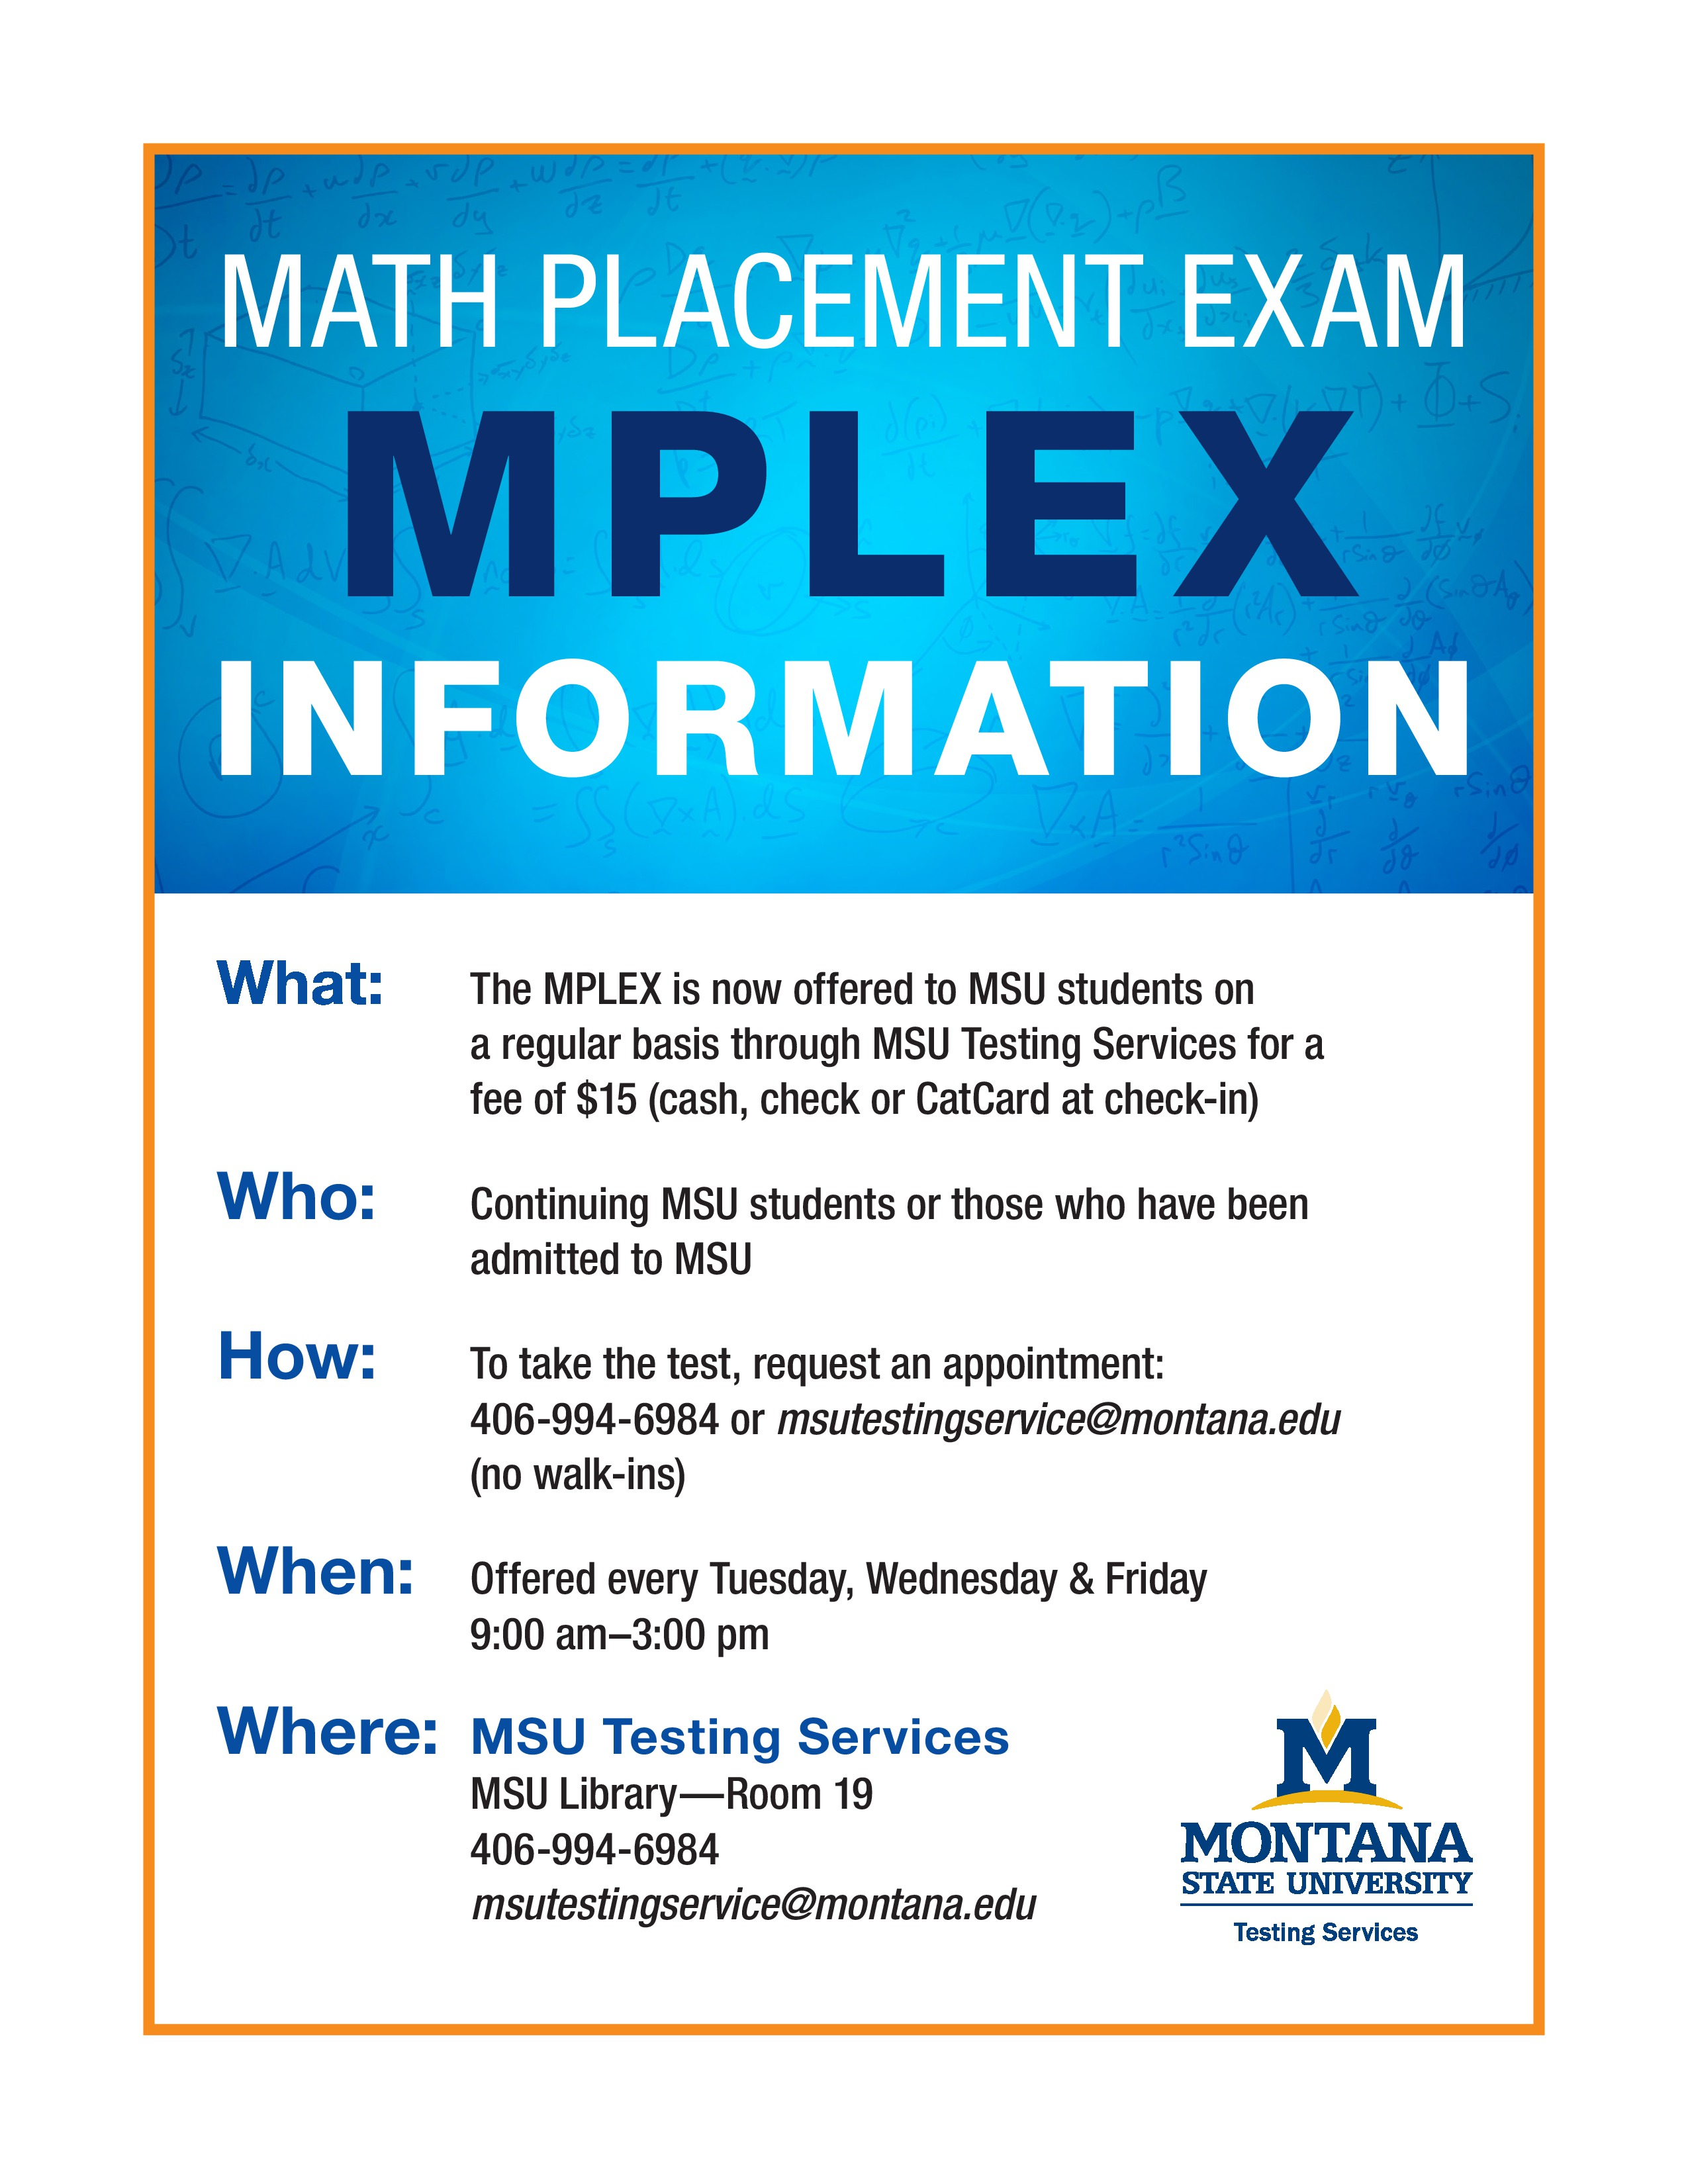 MPLEX Math Placement Text Information Flier